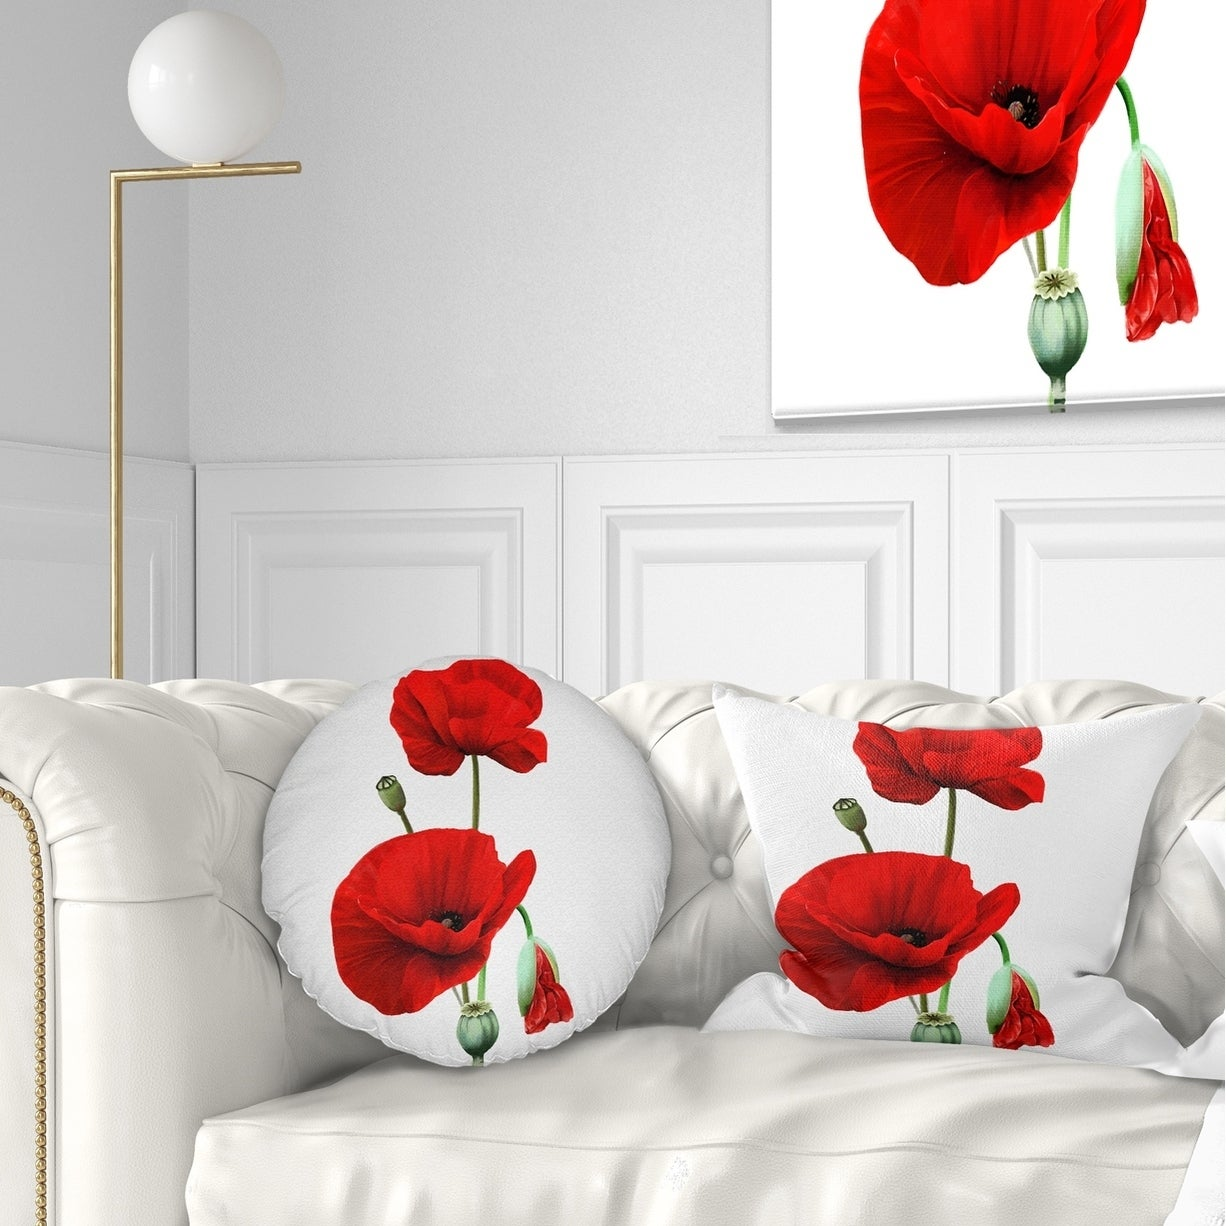 Shop Designart Red Poppies On White Background Floral Throw